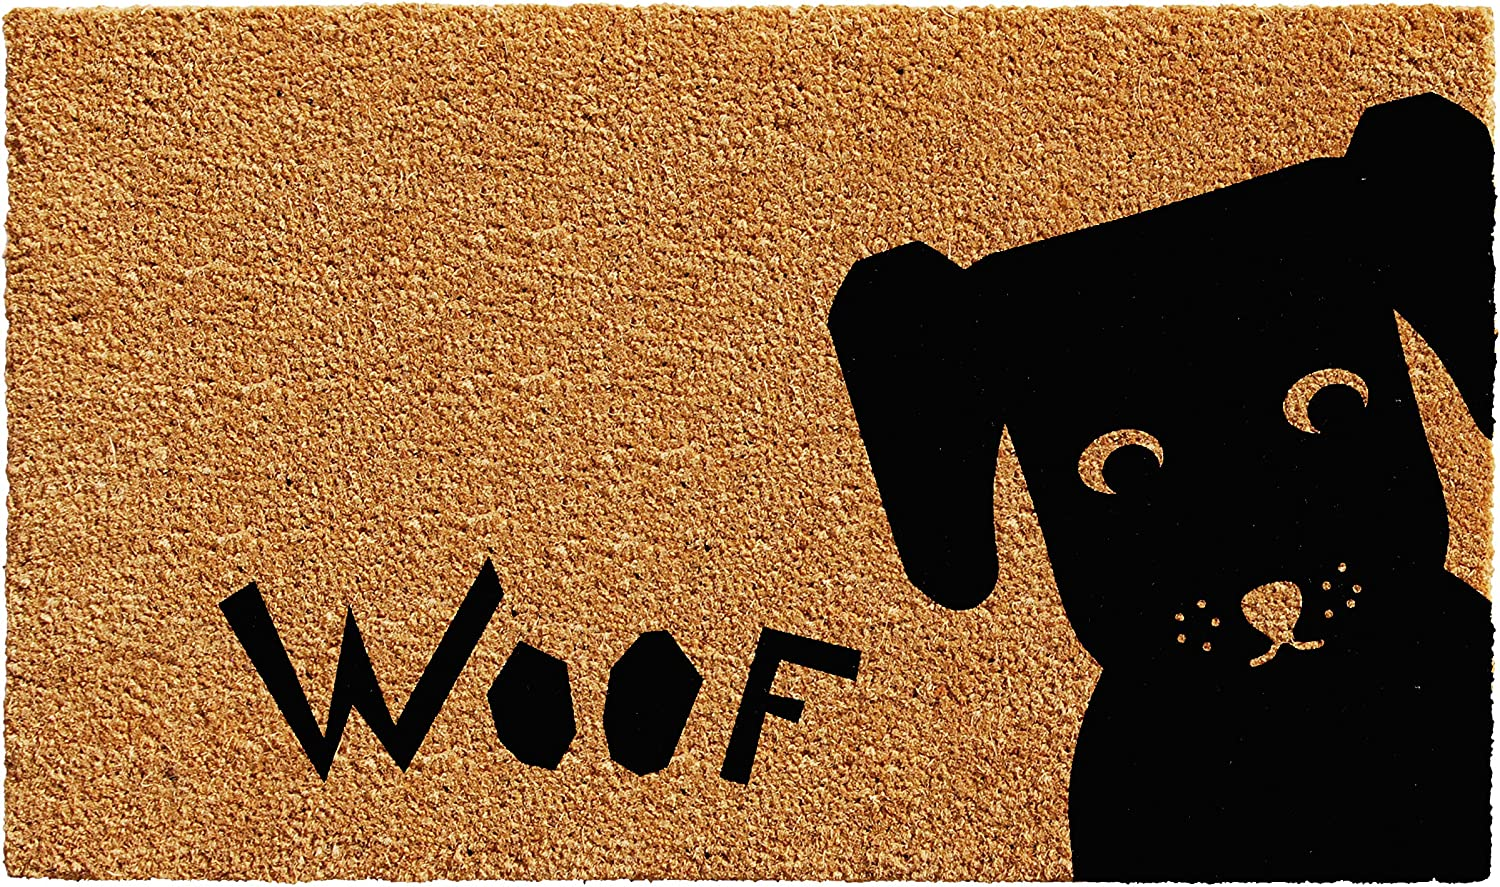 Calloway Mills 102211729 Woof Doormat, 17  x 29 , Natural, Black